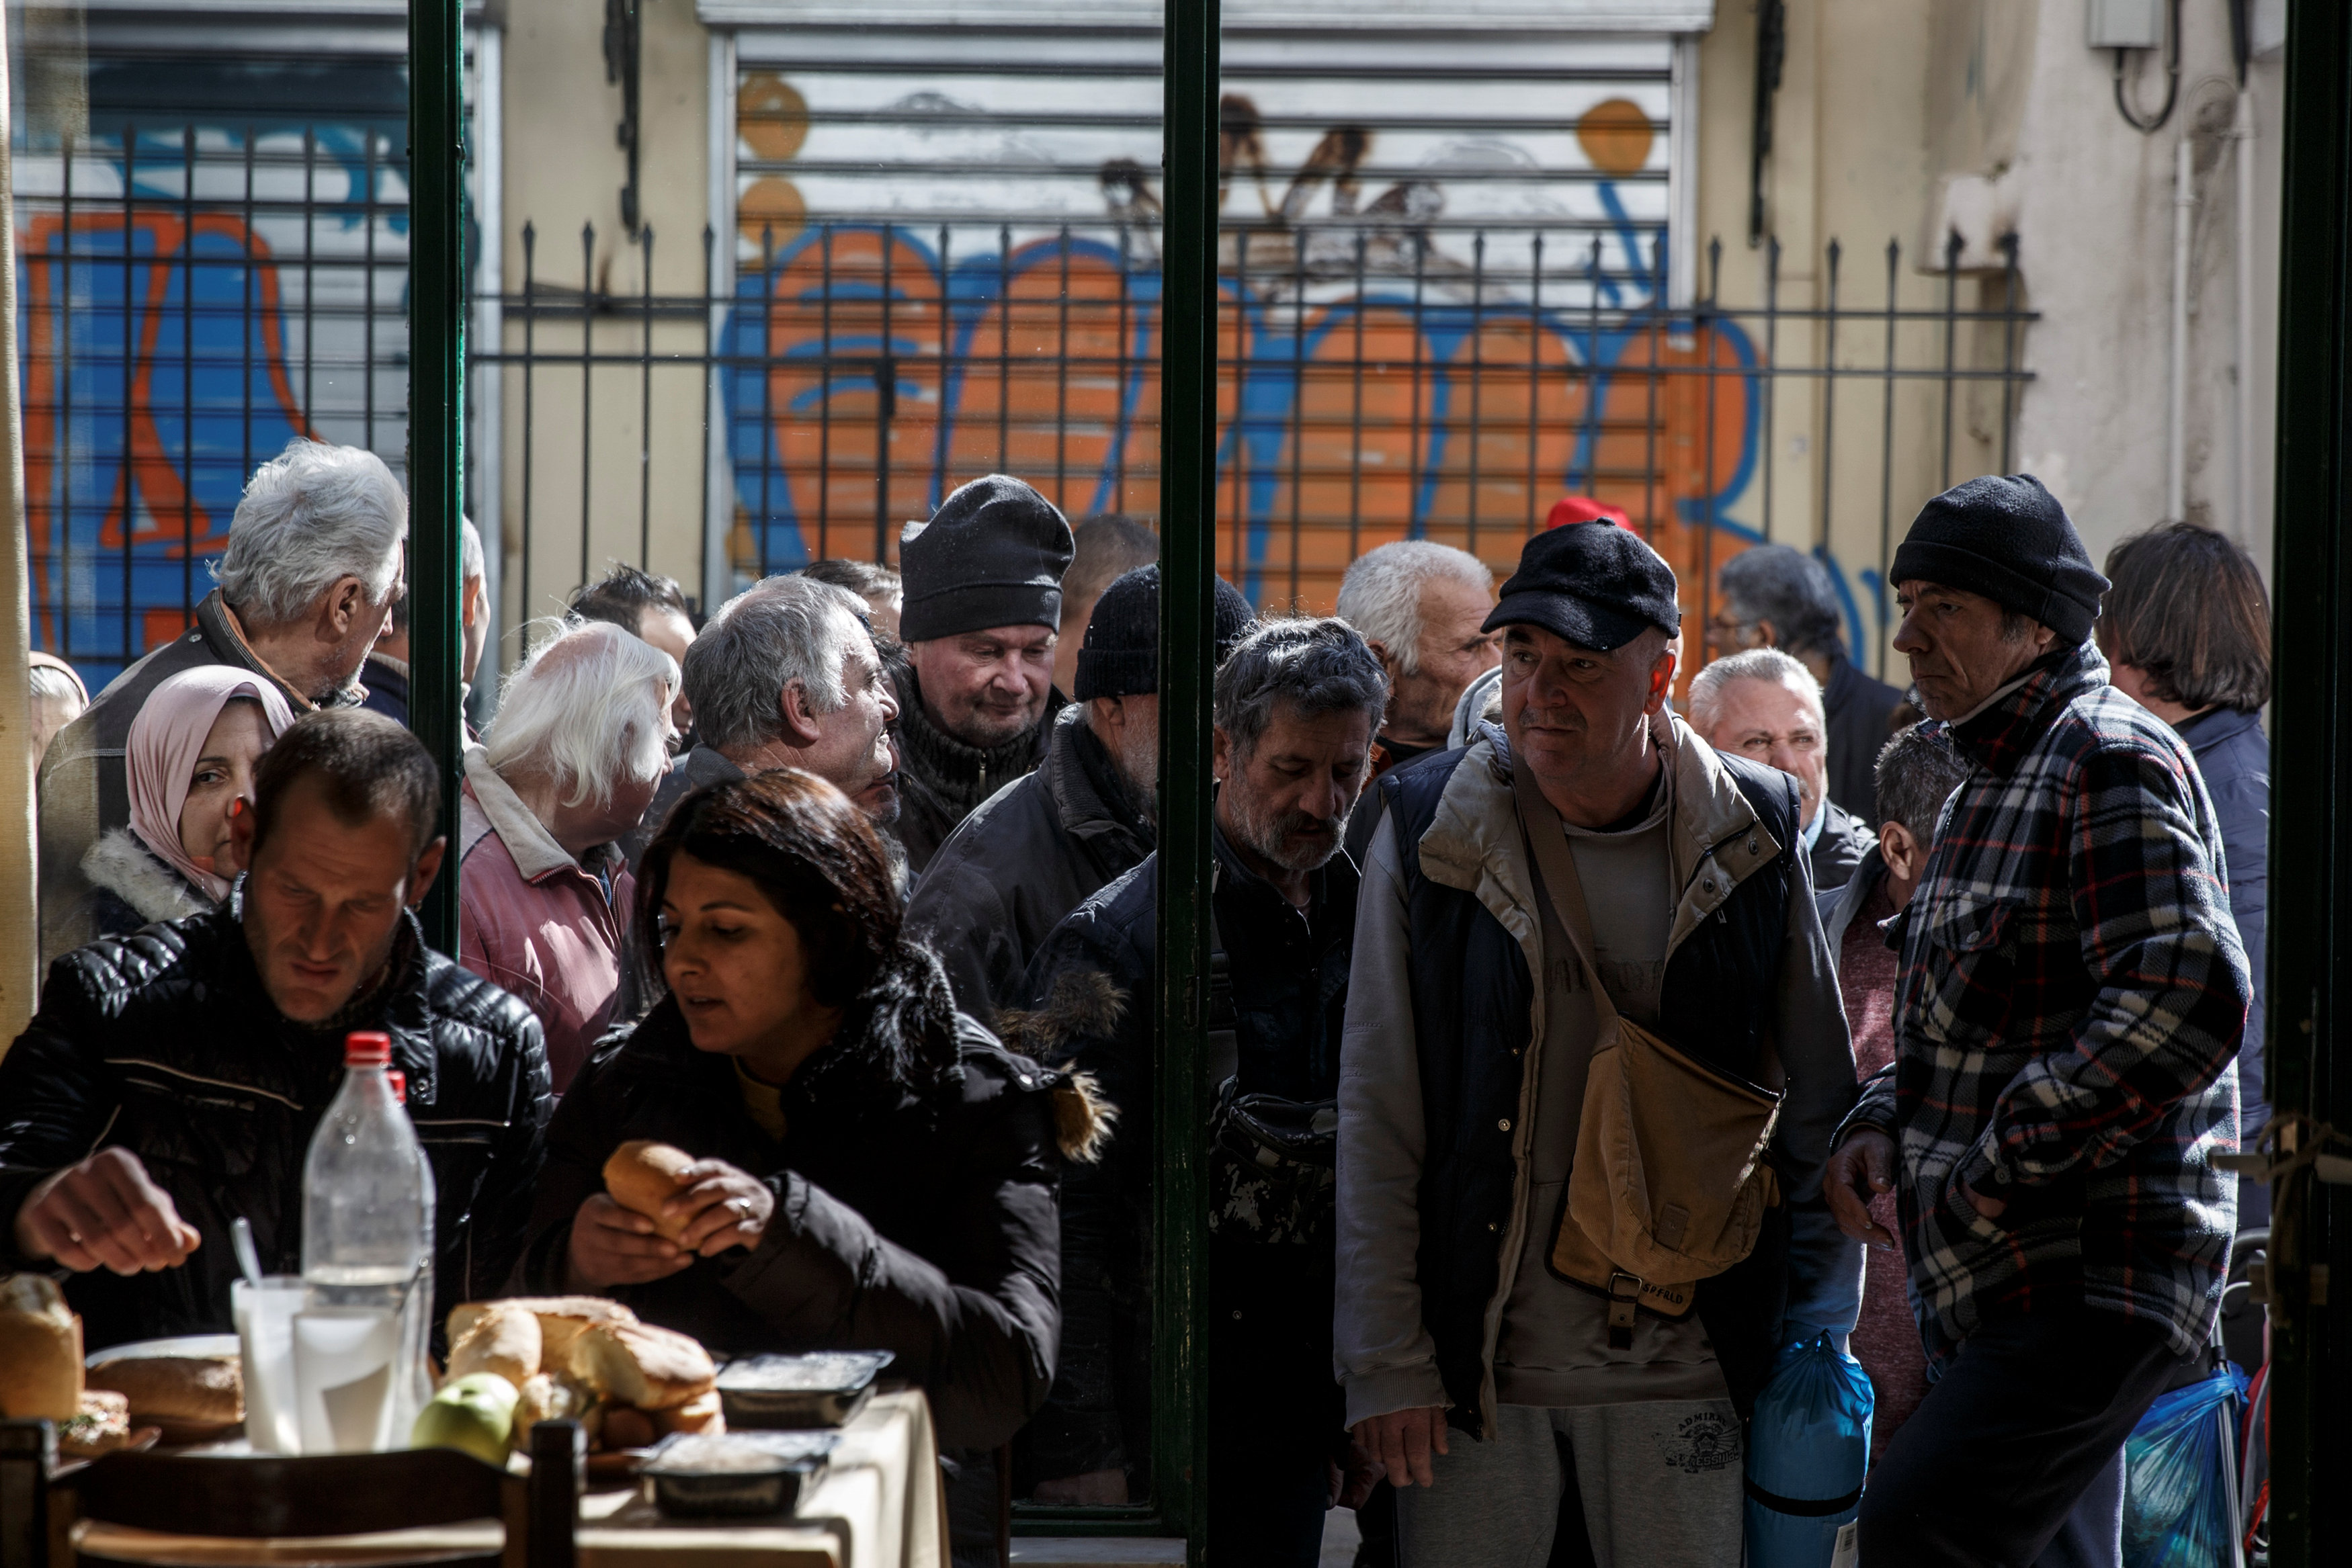 """People line up as they wait to enter a soup kitchen run by the Orthodox church in Athens, Greece, February 15, 2017. REUTERS/Alkis Konstantinidis            SEARCH """"POVERTY GREECE"""" FOR THIS STORY. SEARCH """"WIDER IMAGE"""" FOR ALL STORIES."""